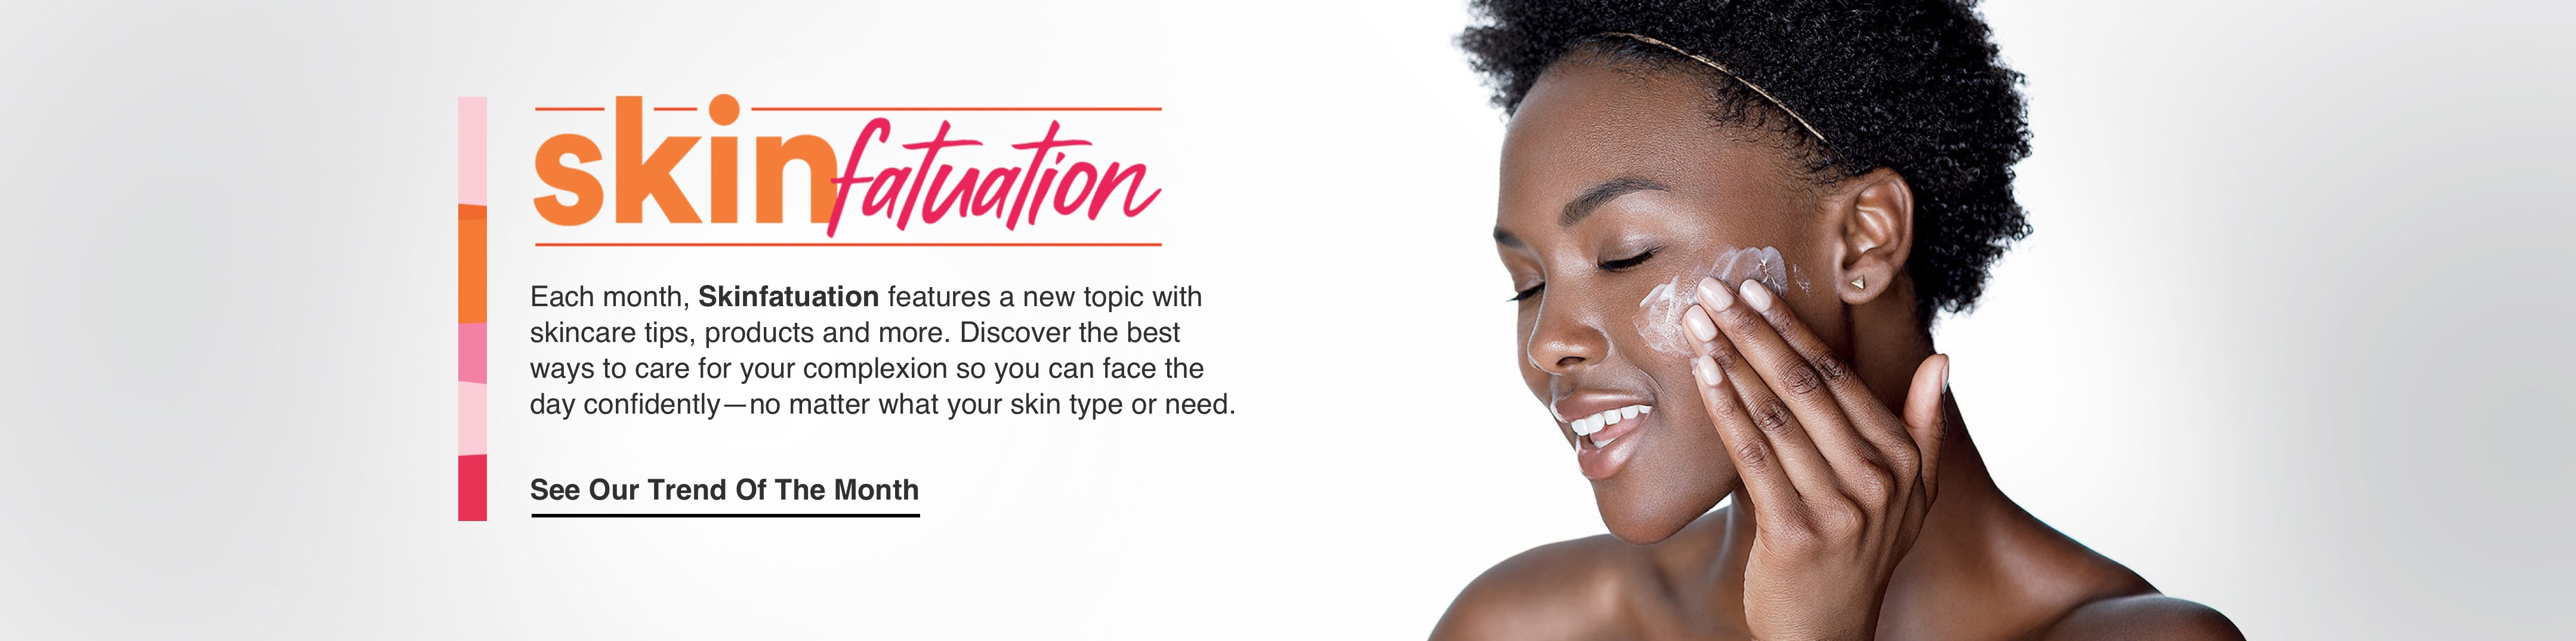 Skin Care Trends You Need to Follow advise